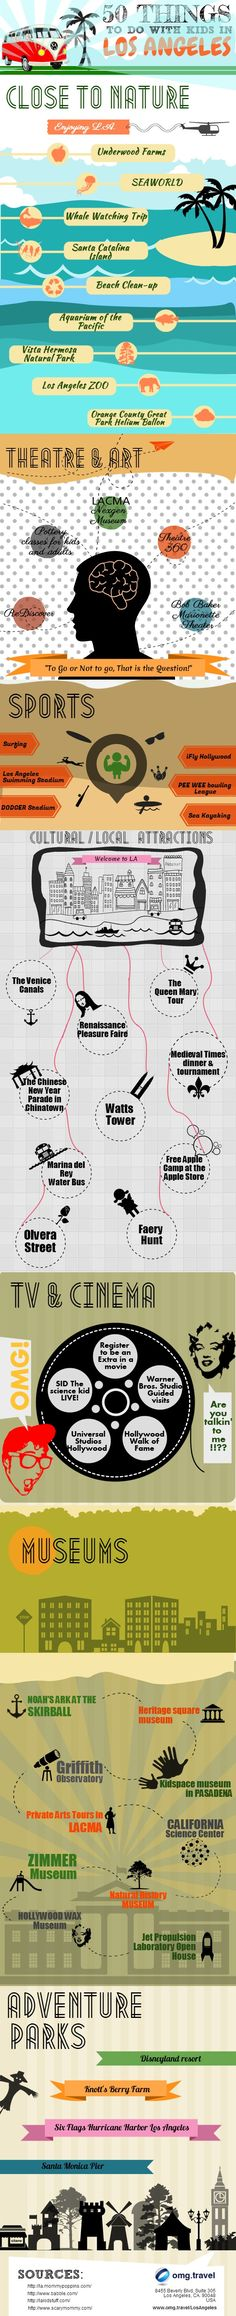 50 Things To Do With Kids In Los Angeles #Infographic